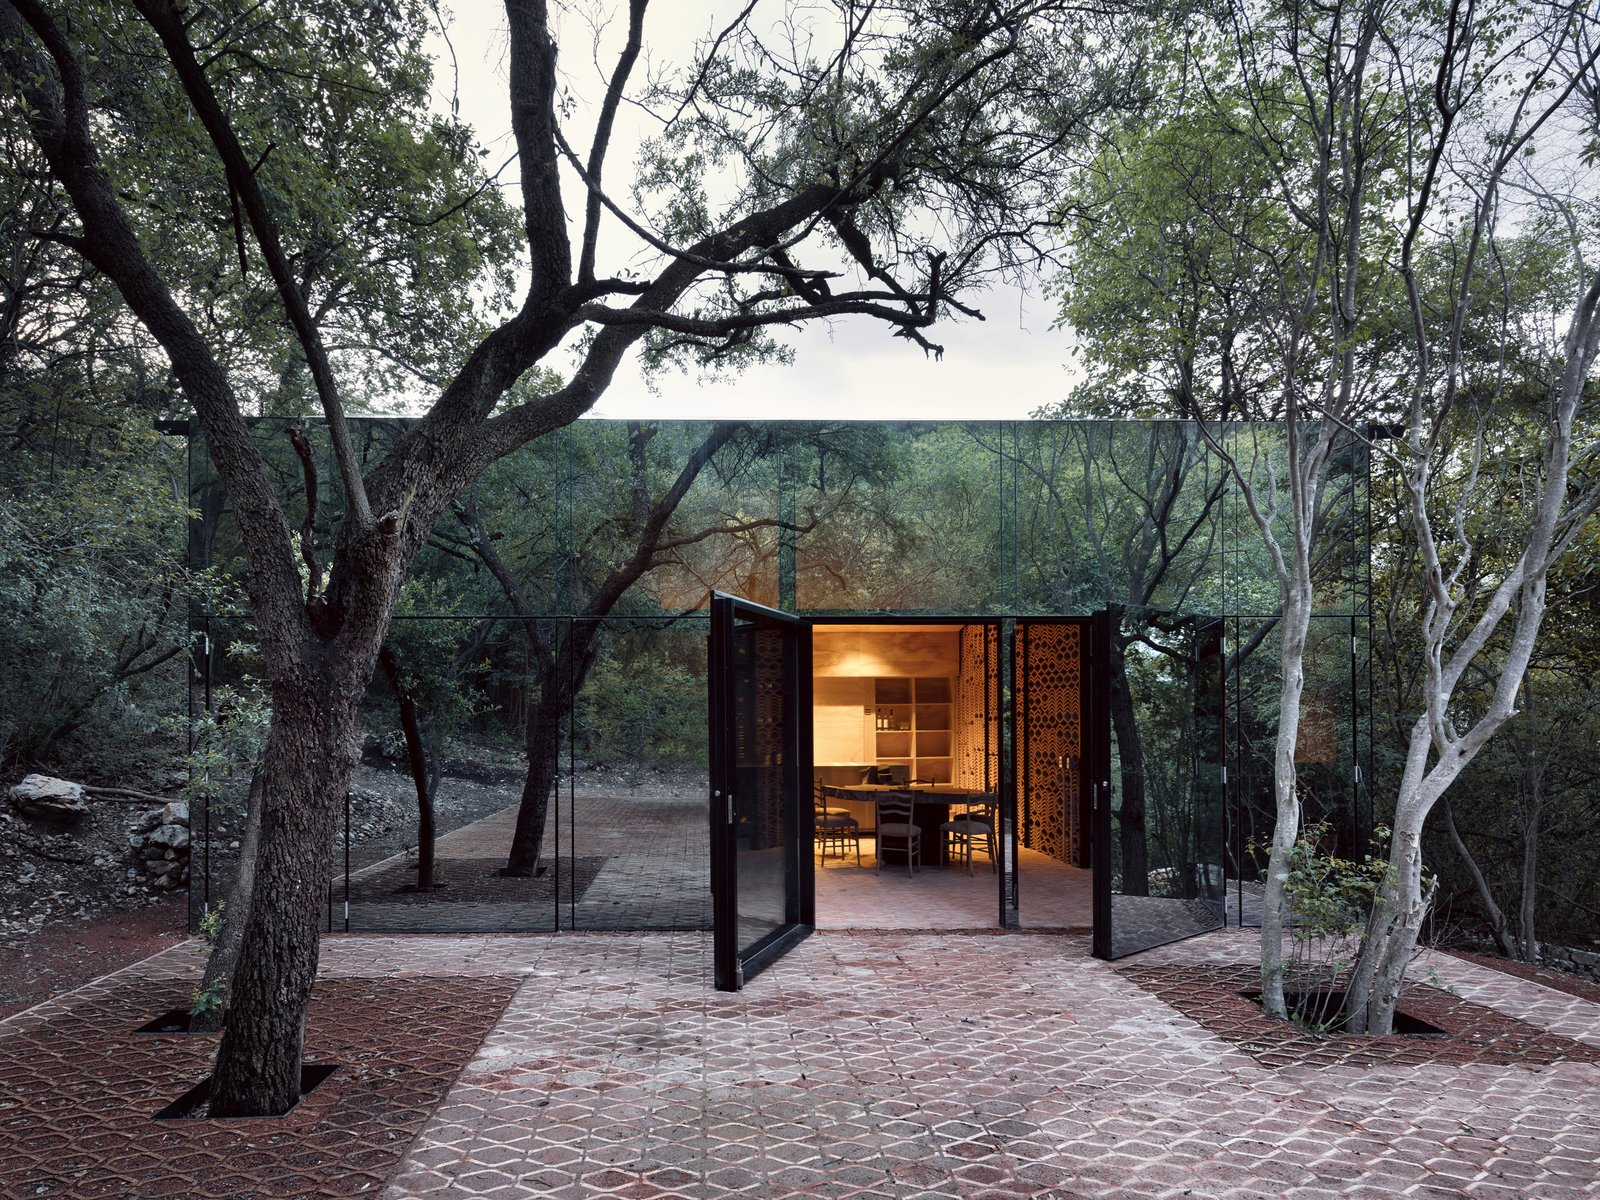 Doors, Swing, and Exterior Mirrored glass allows this holiday home in Mexico to blend in with it's woodland site.  Best Doors Photos from A Mirrored Mexican Home Hides Among a Lush Forest